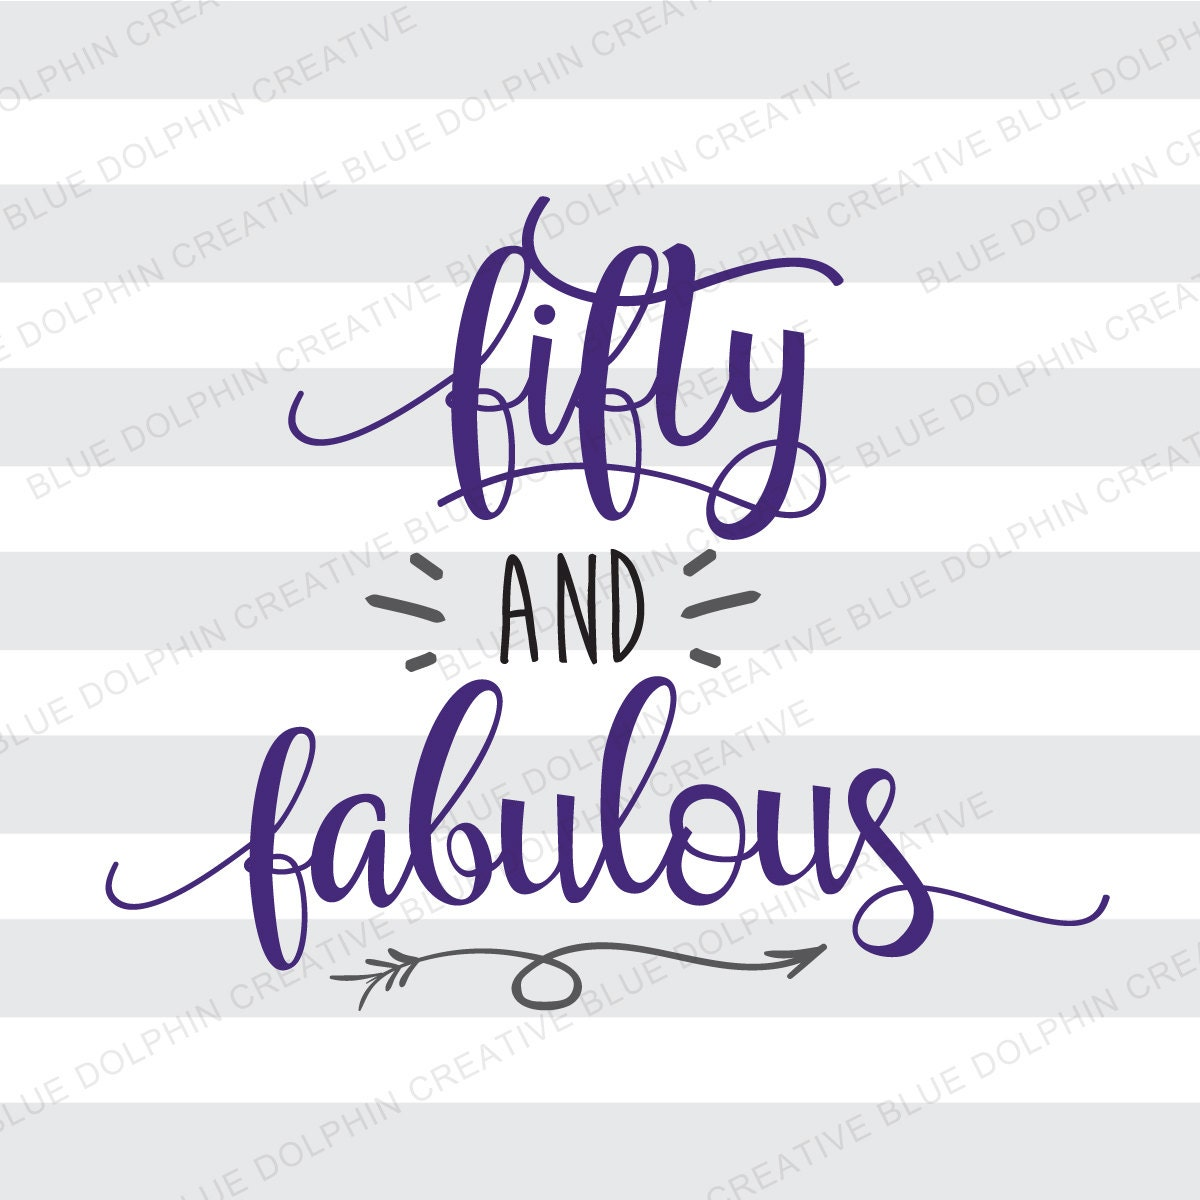 50 Abd Fabulou: Fifty And Fabulous SVG DXF Png Pdf / Fiftieth Birthday Cut